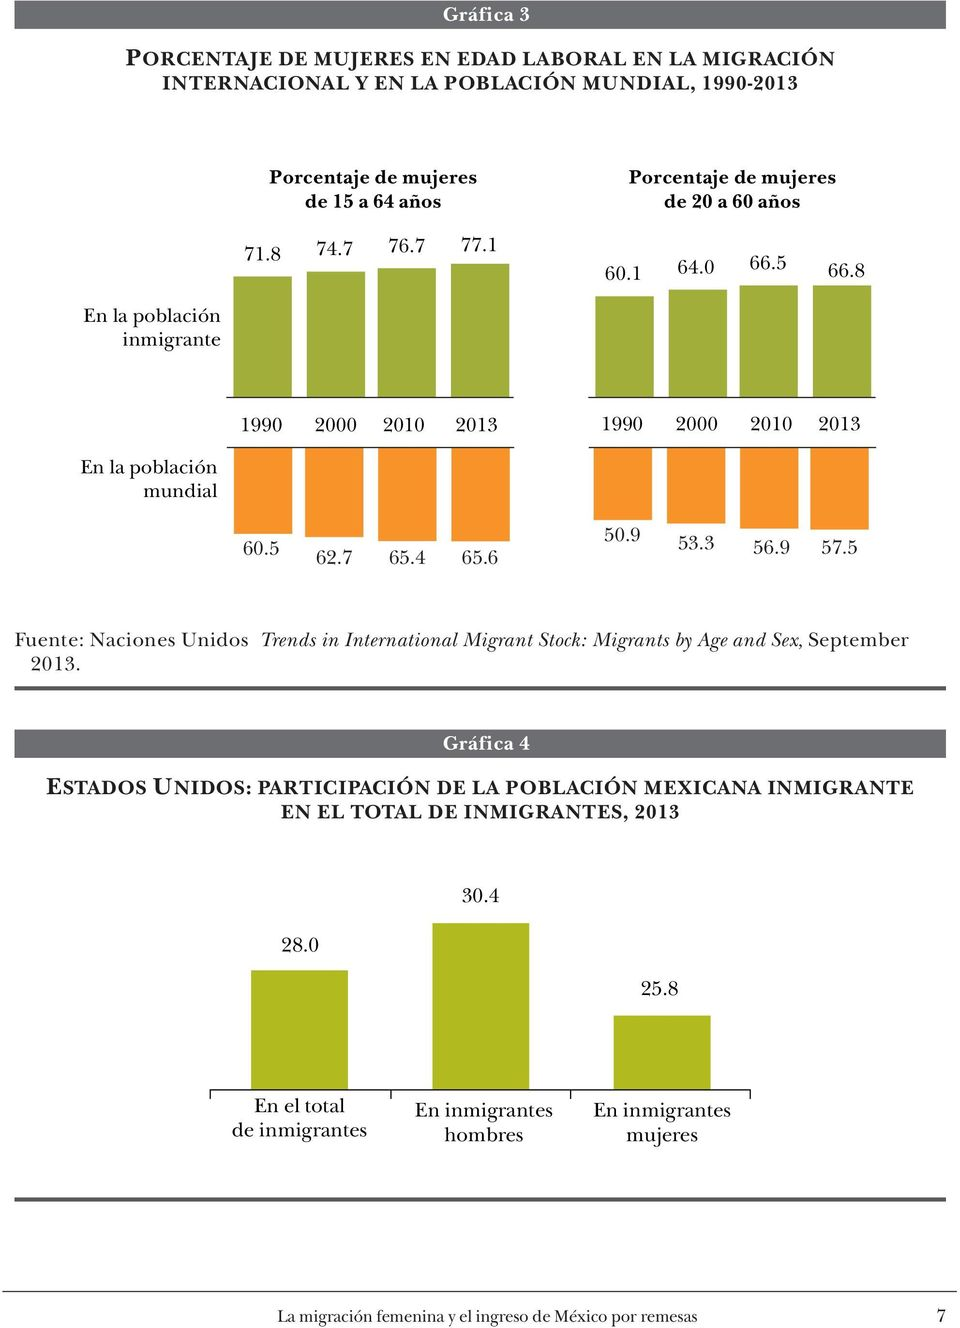 3 56.9 57.5 Fuente: Naciones Unidos Trends in International Migrant Stock: Migrants by Age and Sex, September 2013.